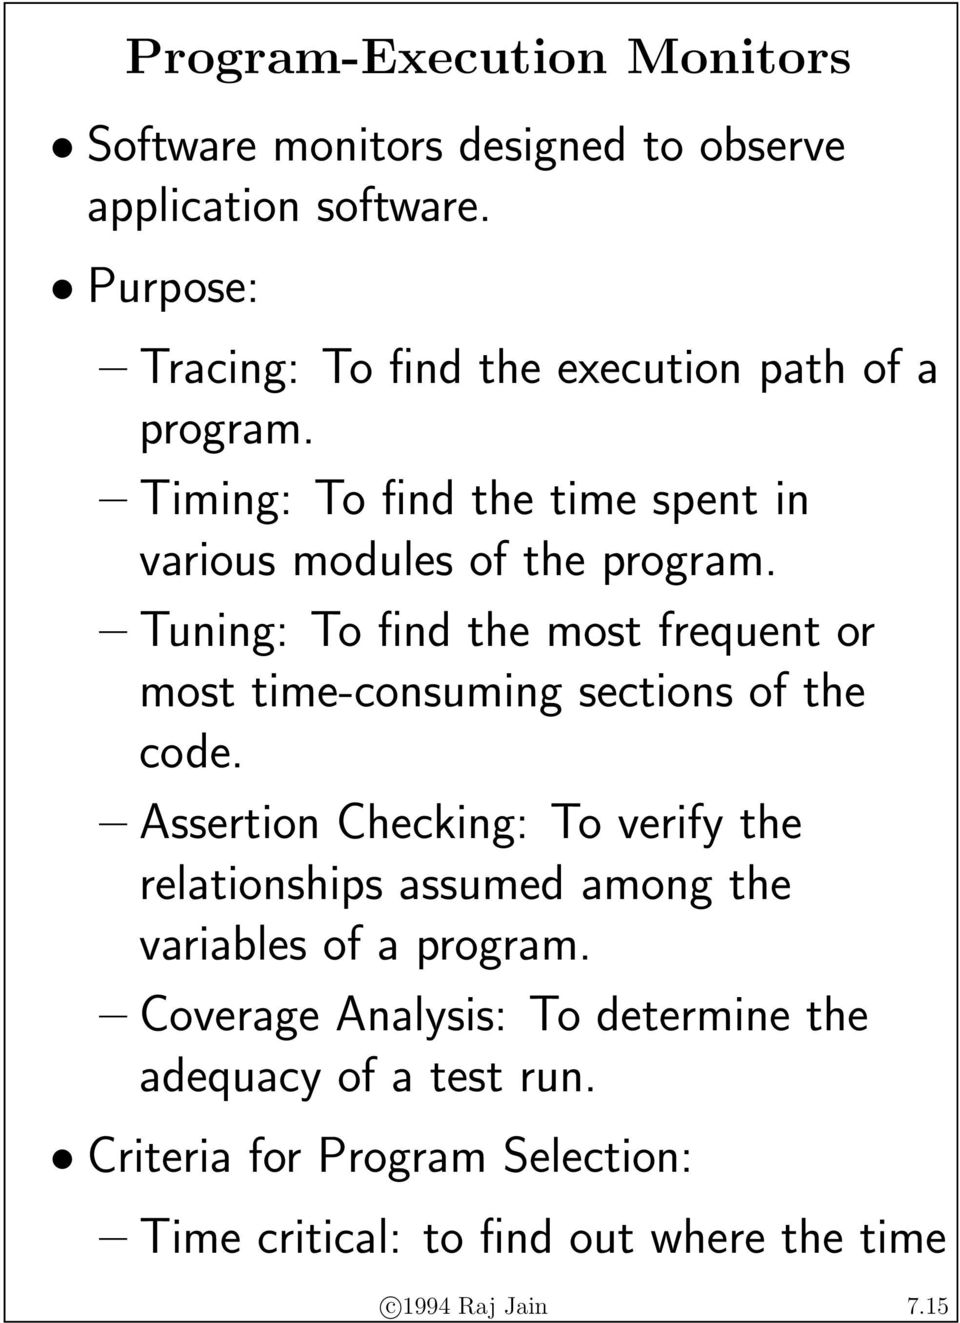 Tuning: To find the most frequent or most time-consuming sections of the code.